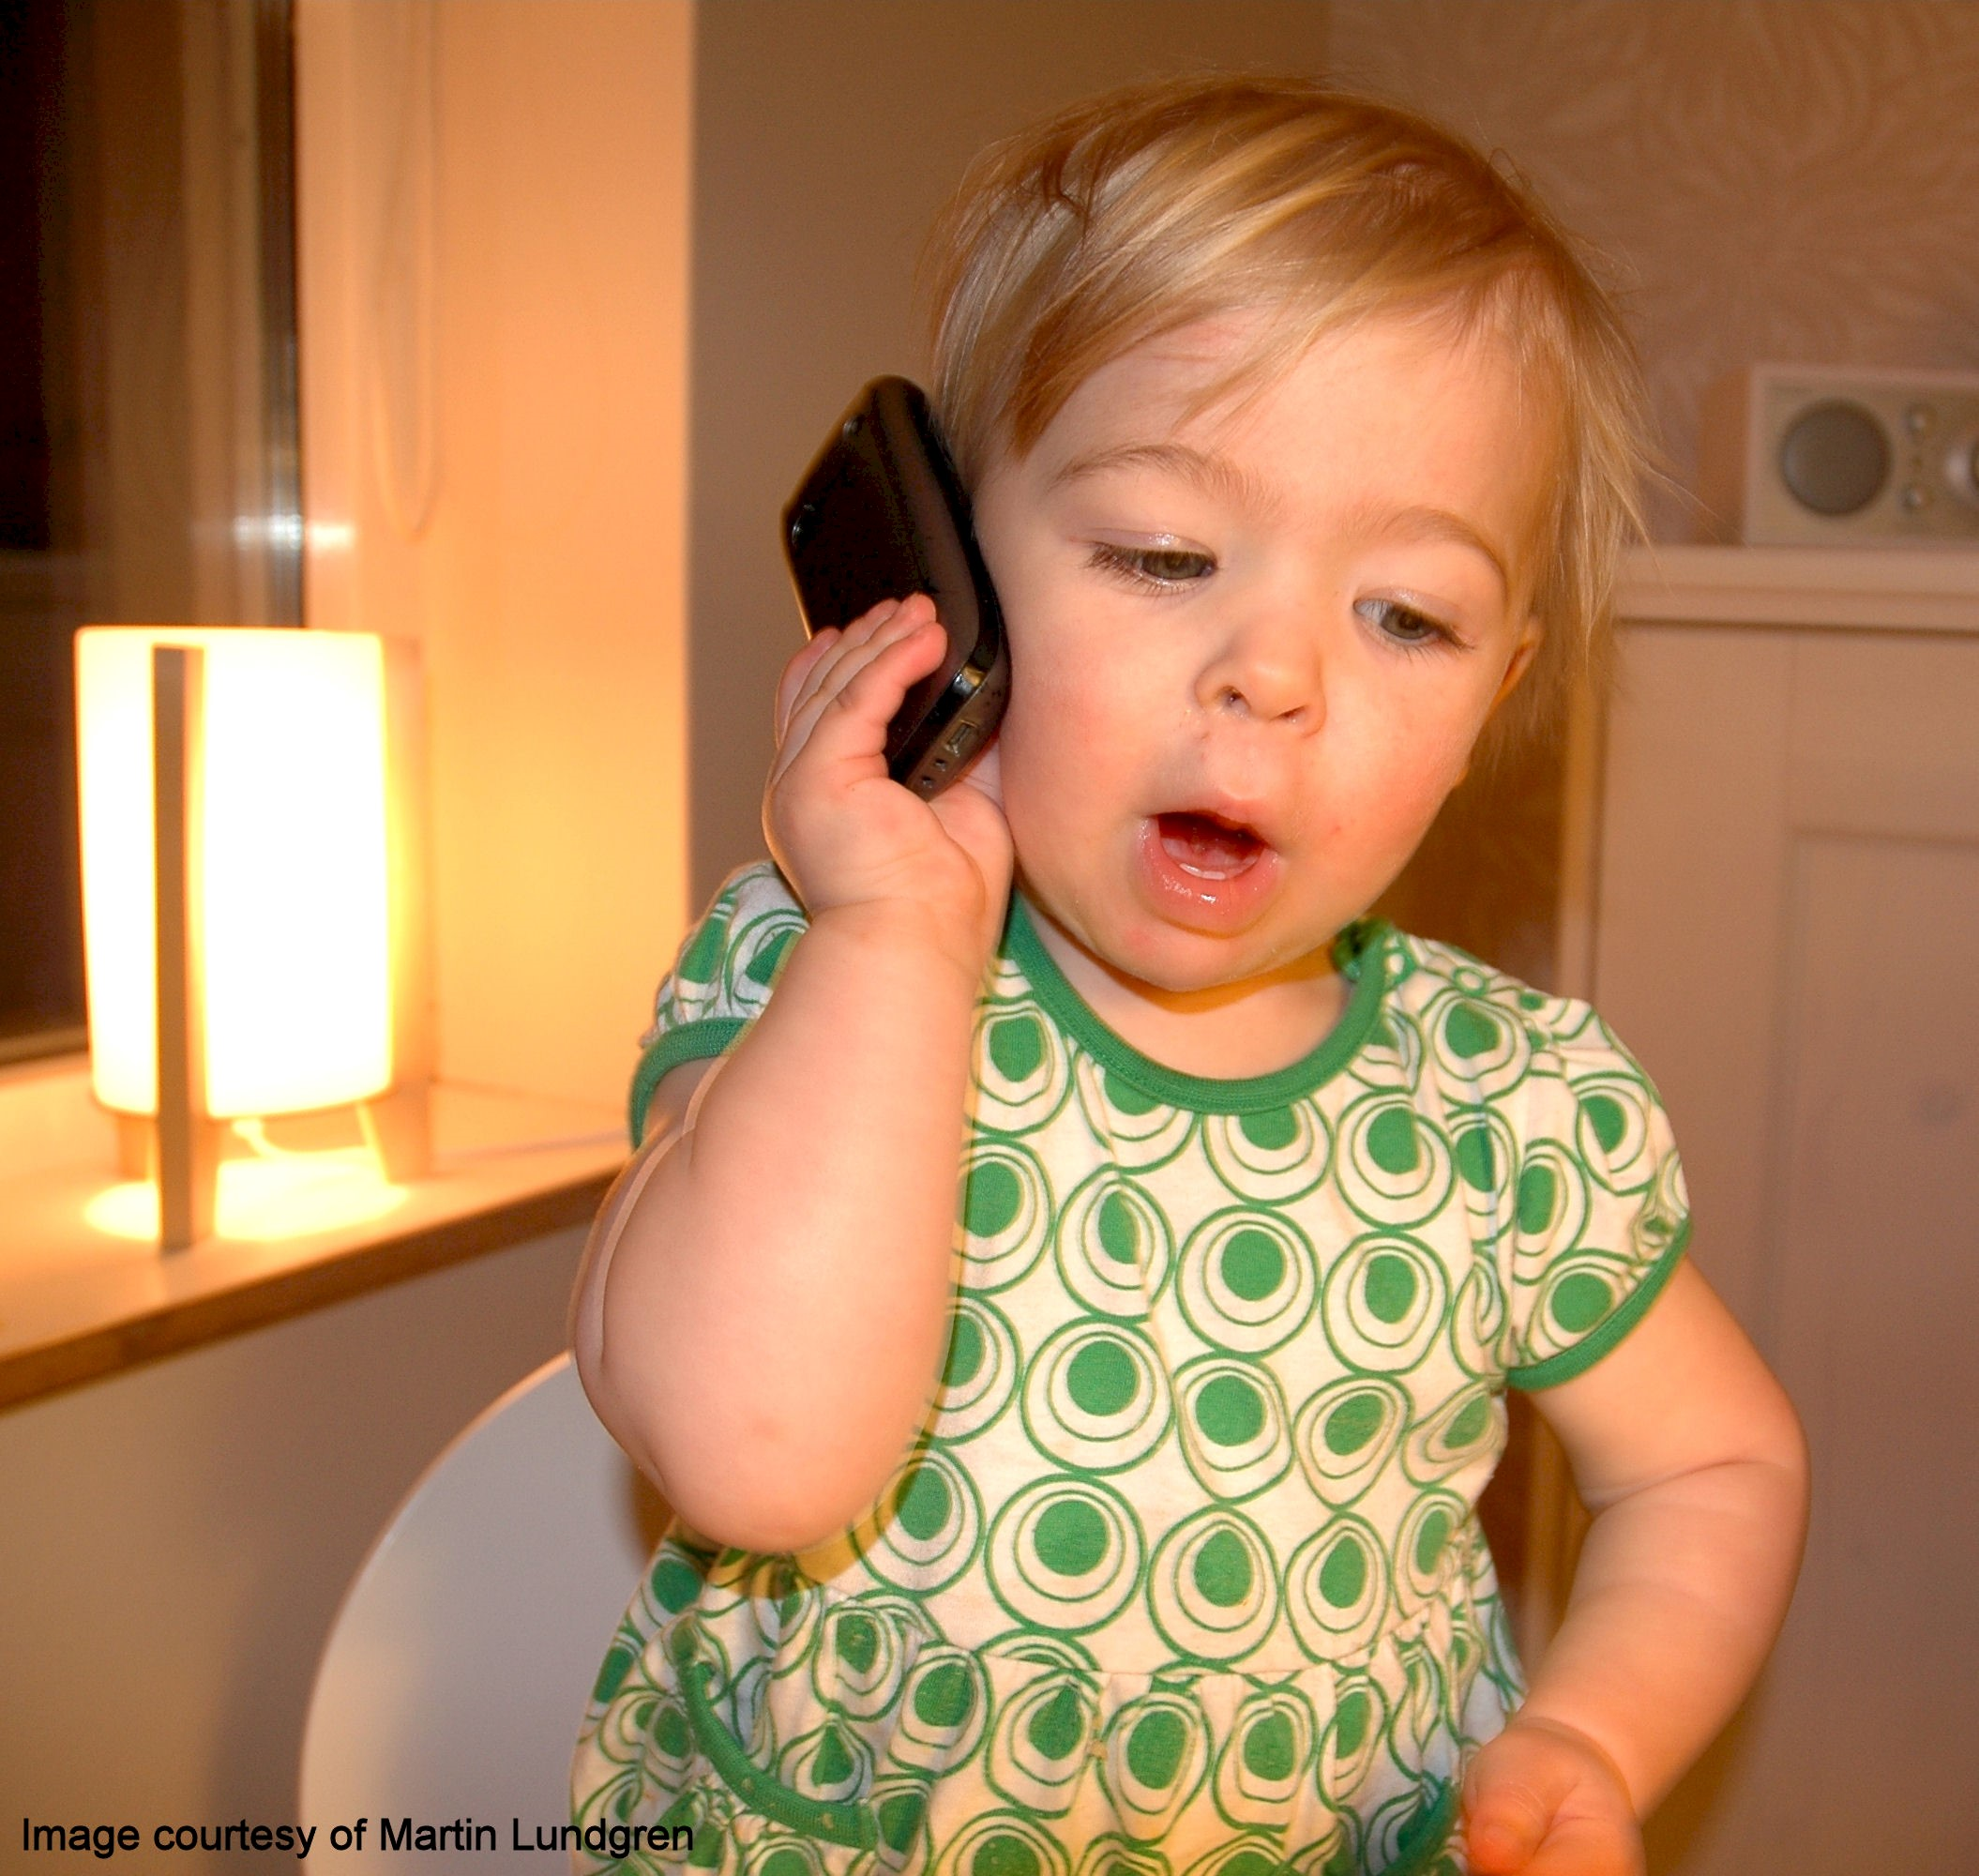 15 month old girl on the phone